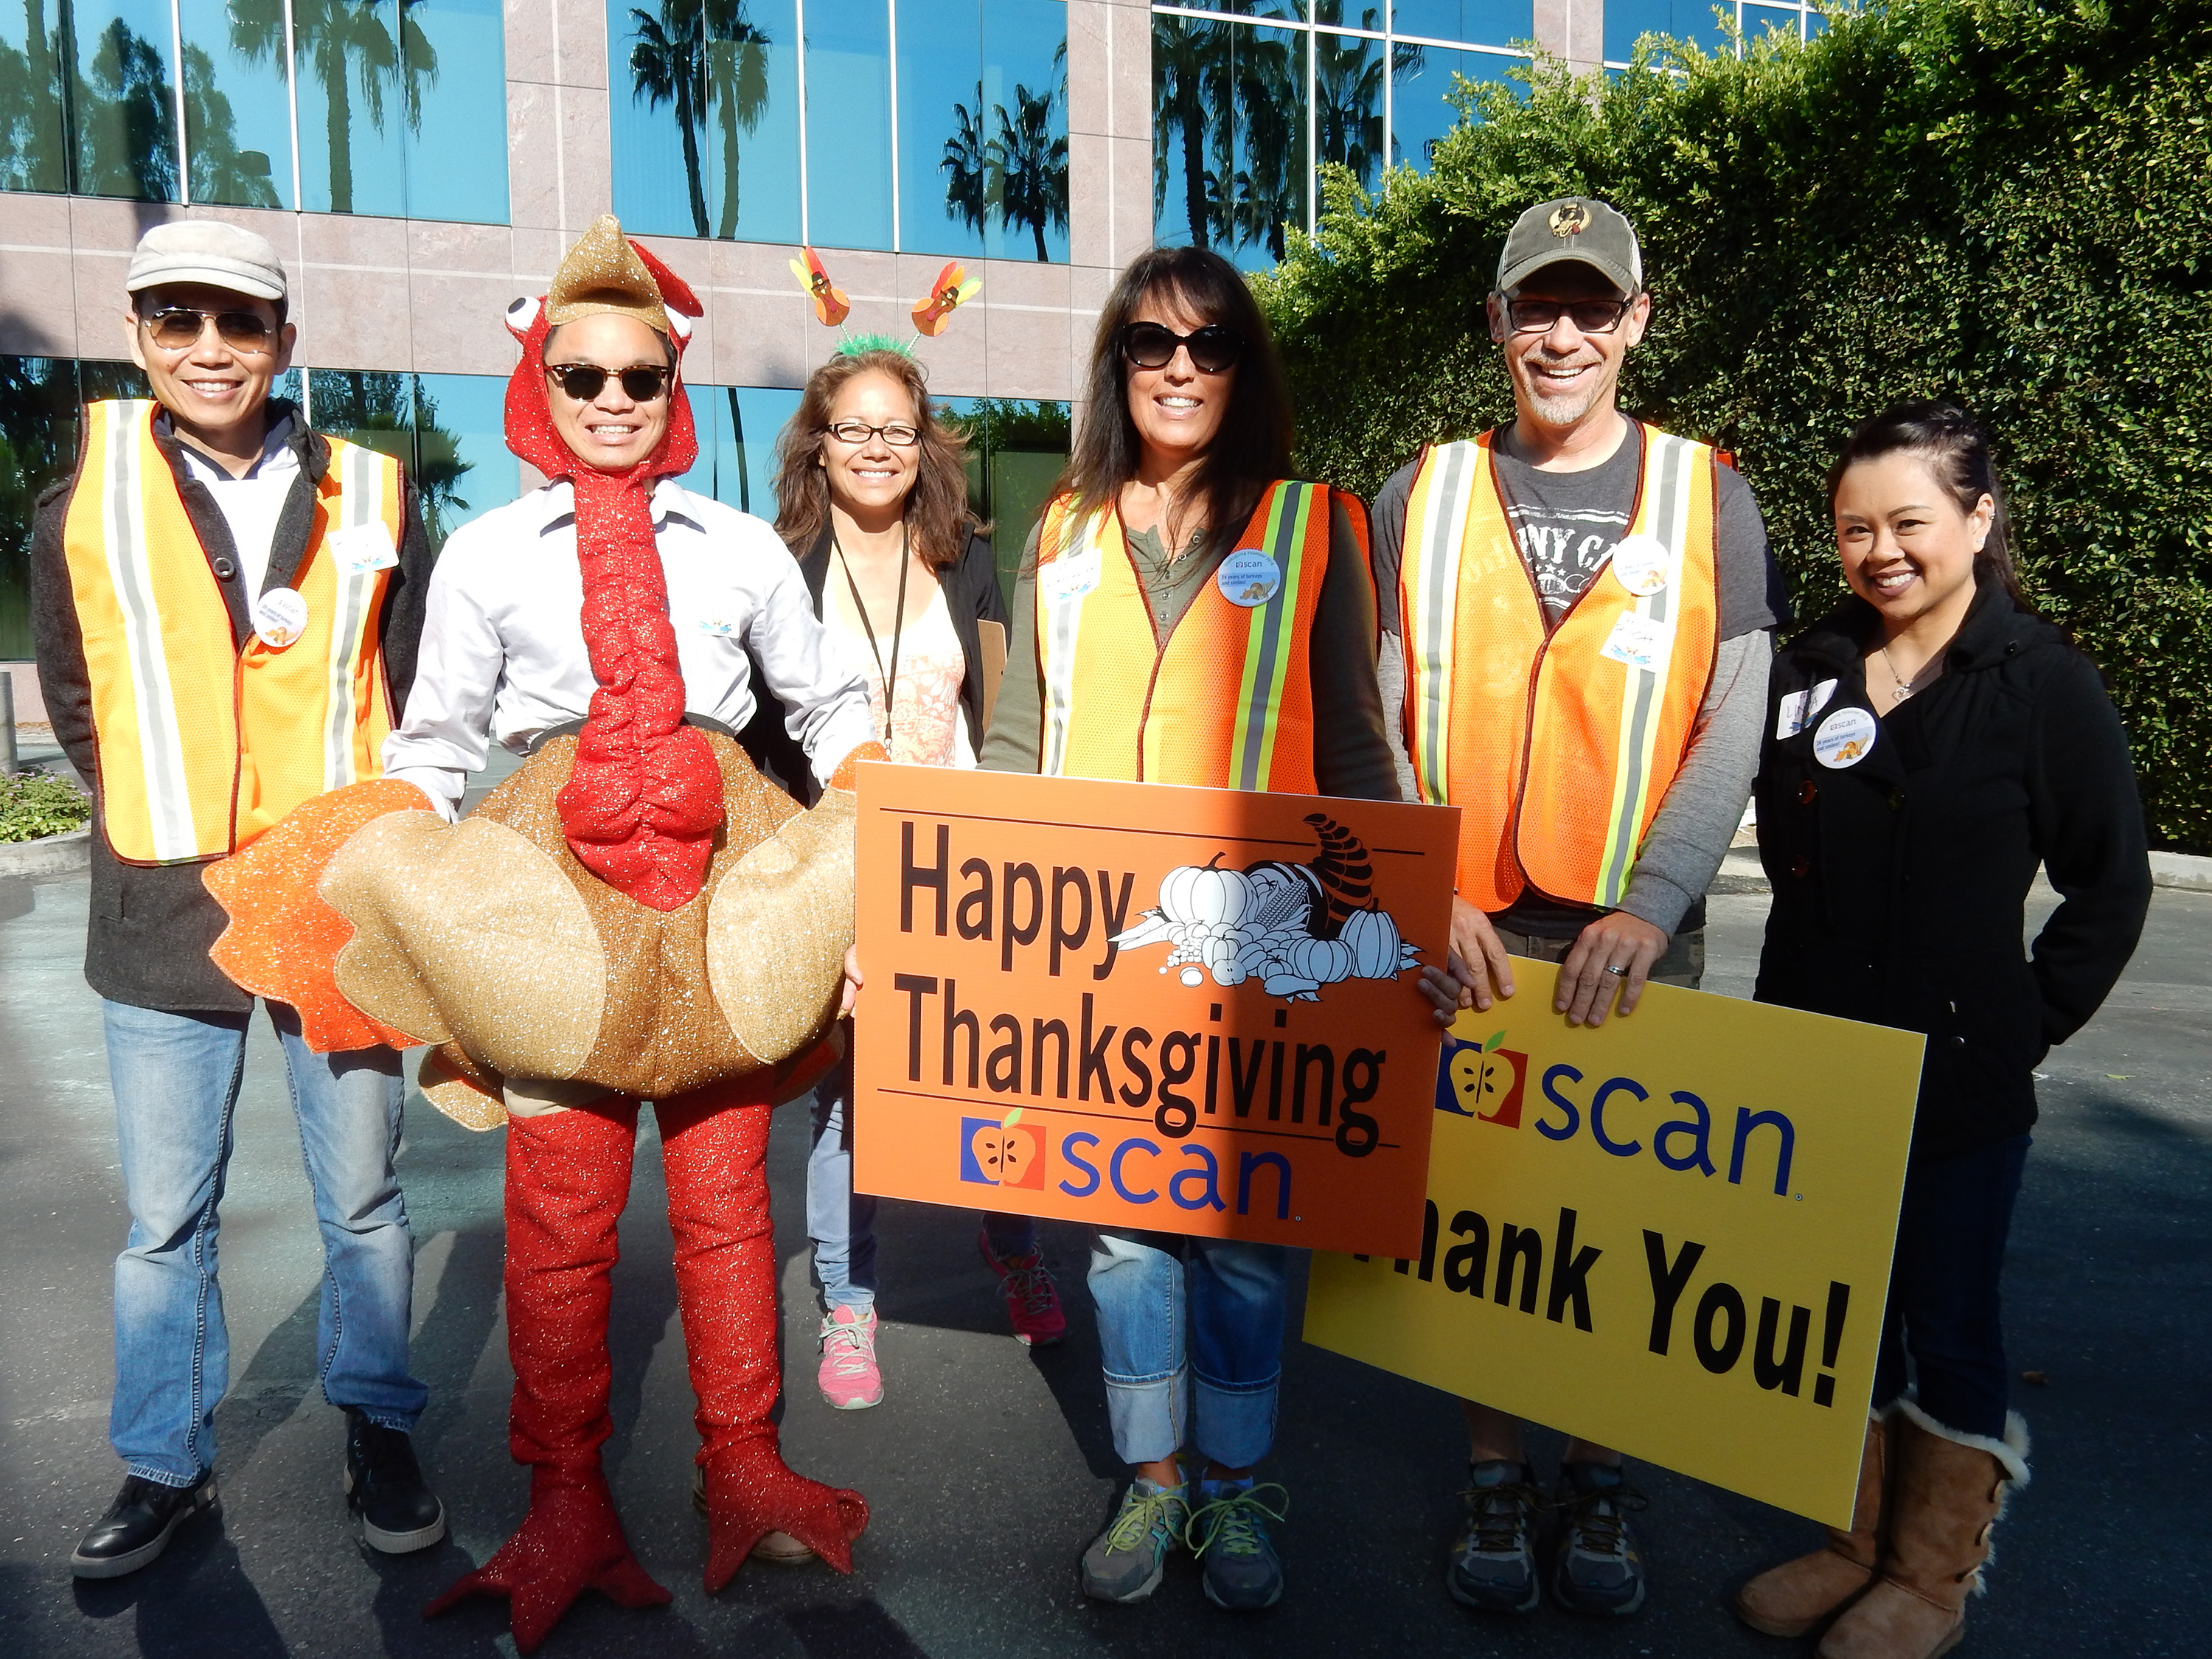 Volunteers help direct traffic at SCAN's 24th annual Thanksgiving meal delivery event in Long Beach. (Photo: Business Wire)